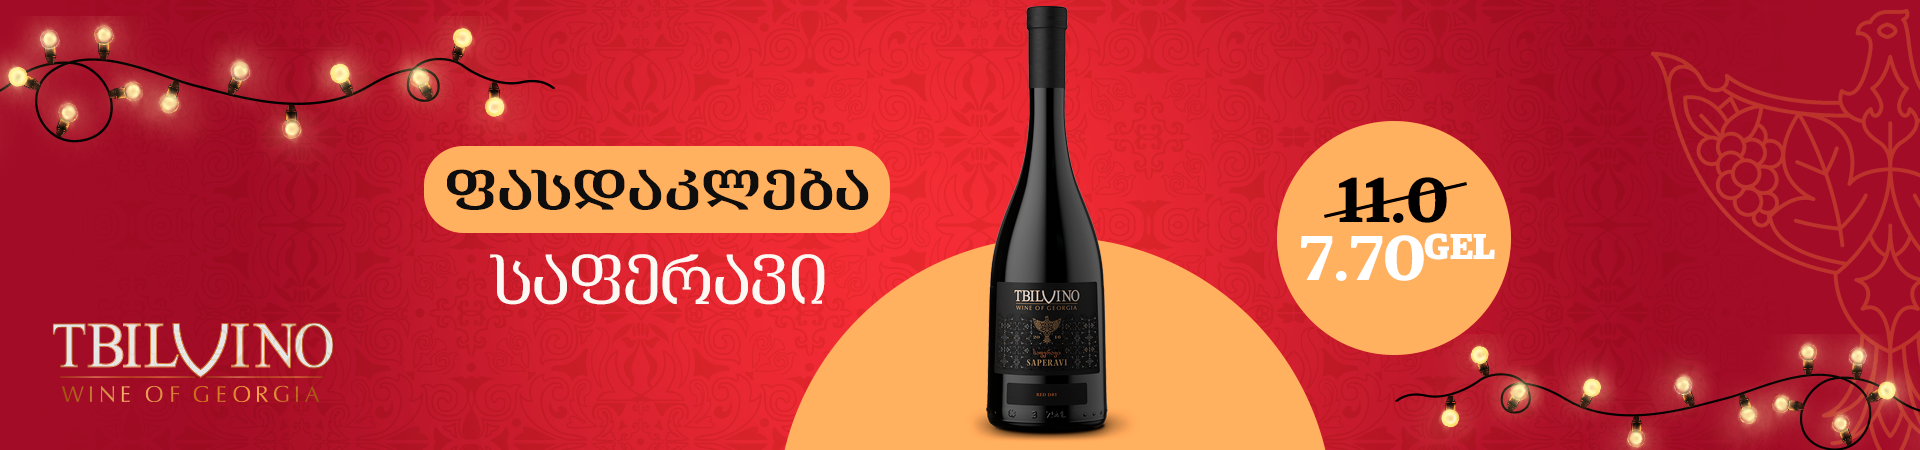 Tbilvino-New-year-saferavi-1920X450-GEO